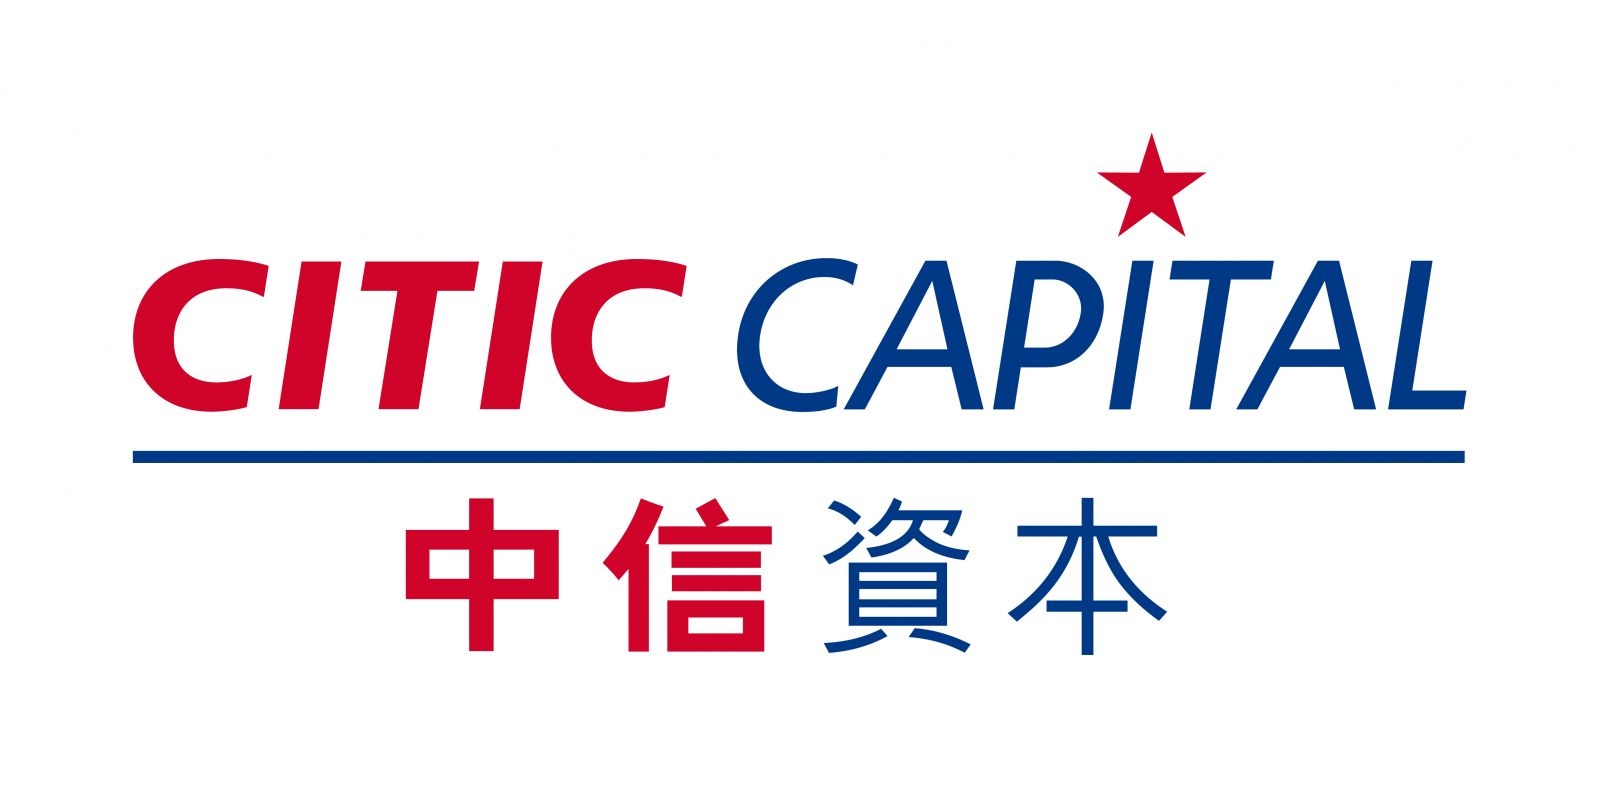 sofaer capital global research hk limited best custom sofa nyc russias positioning in the asia pacific economic model